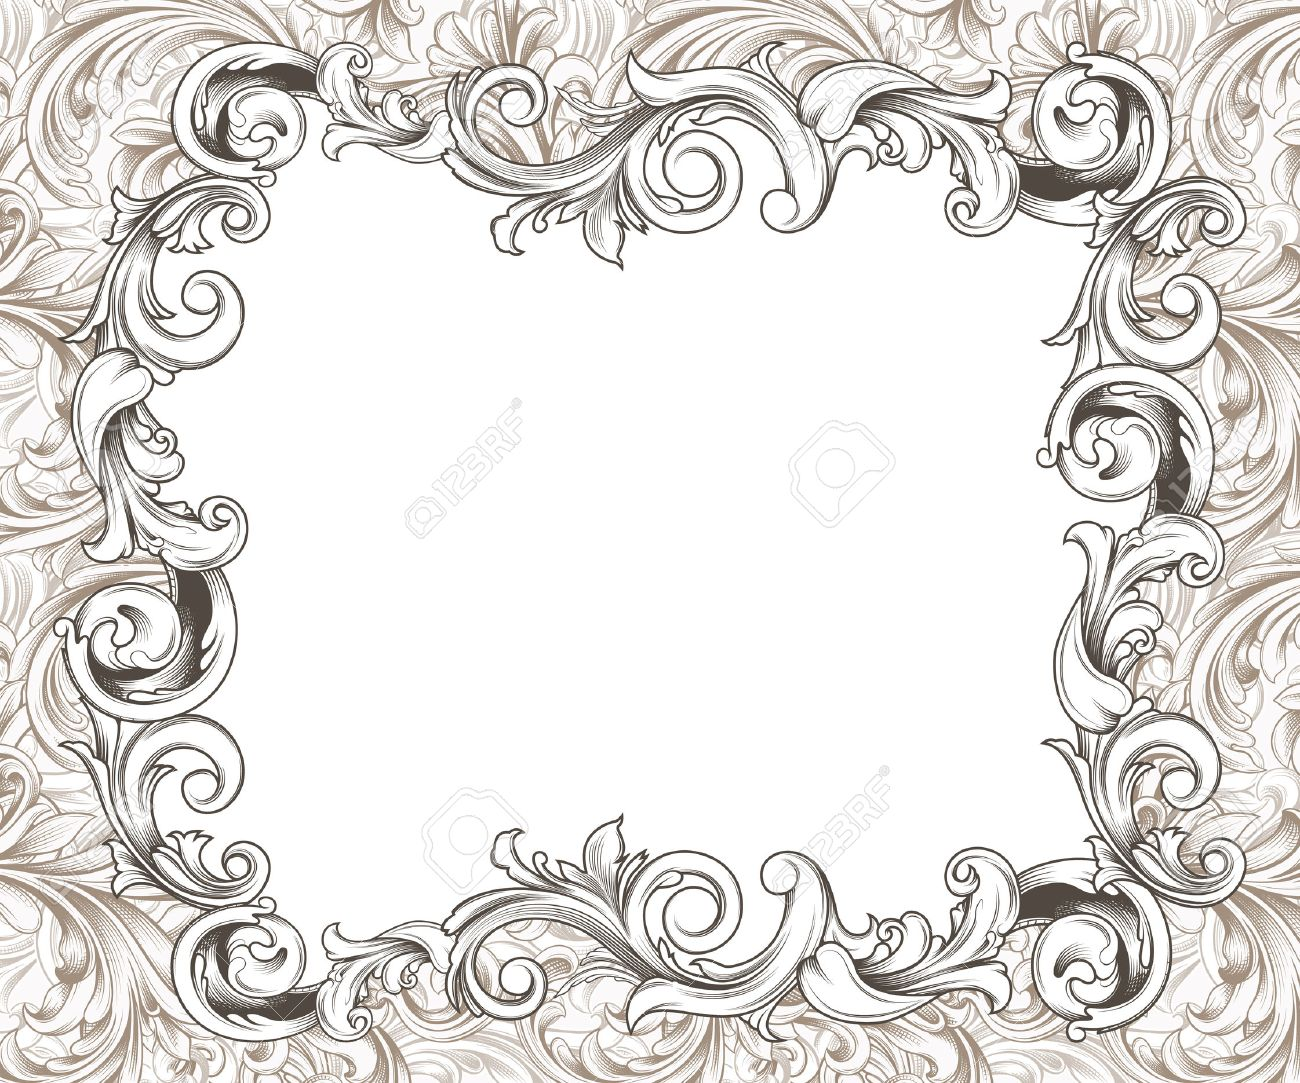 ornate baroque or rococo frame of hand drawn engraved flourishes stock photo 33876883